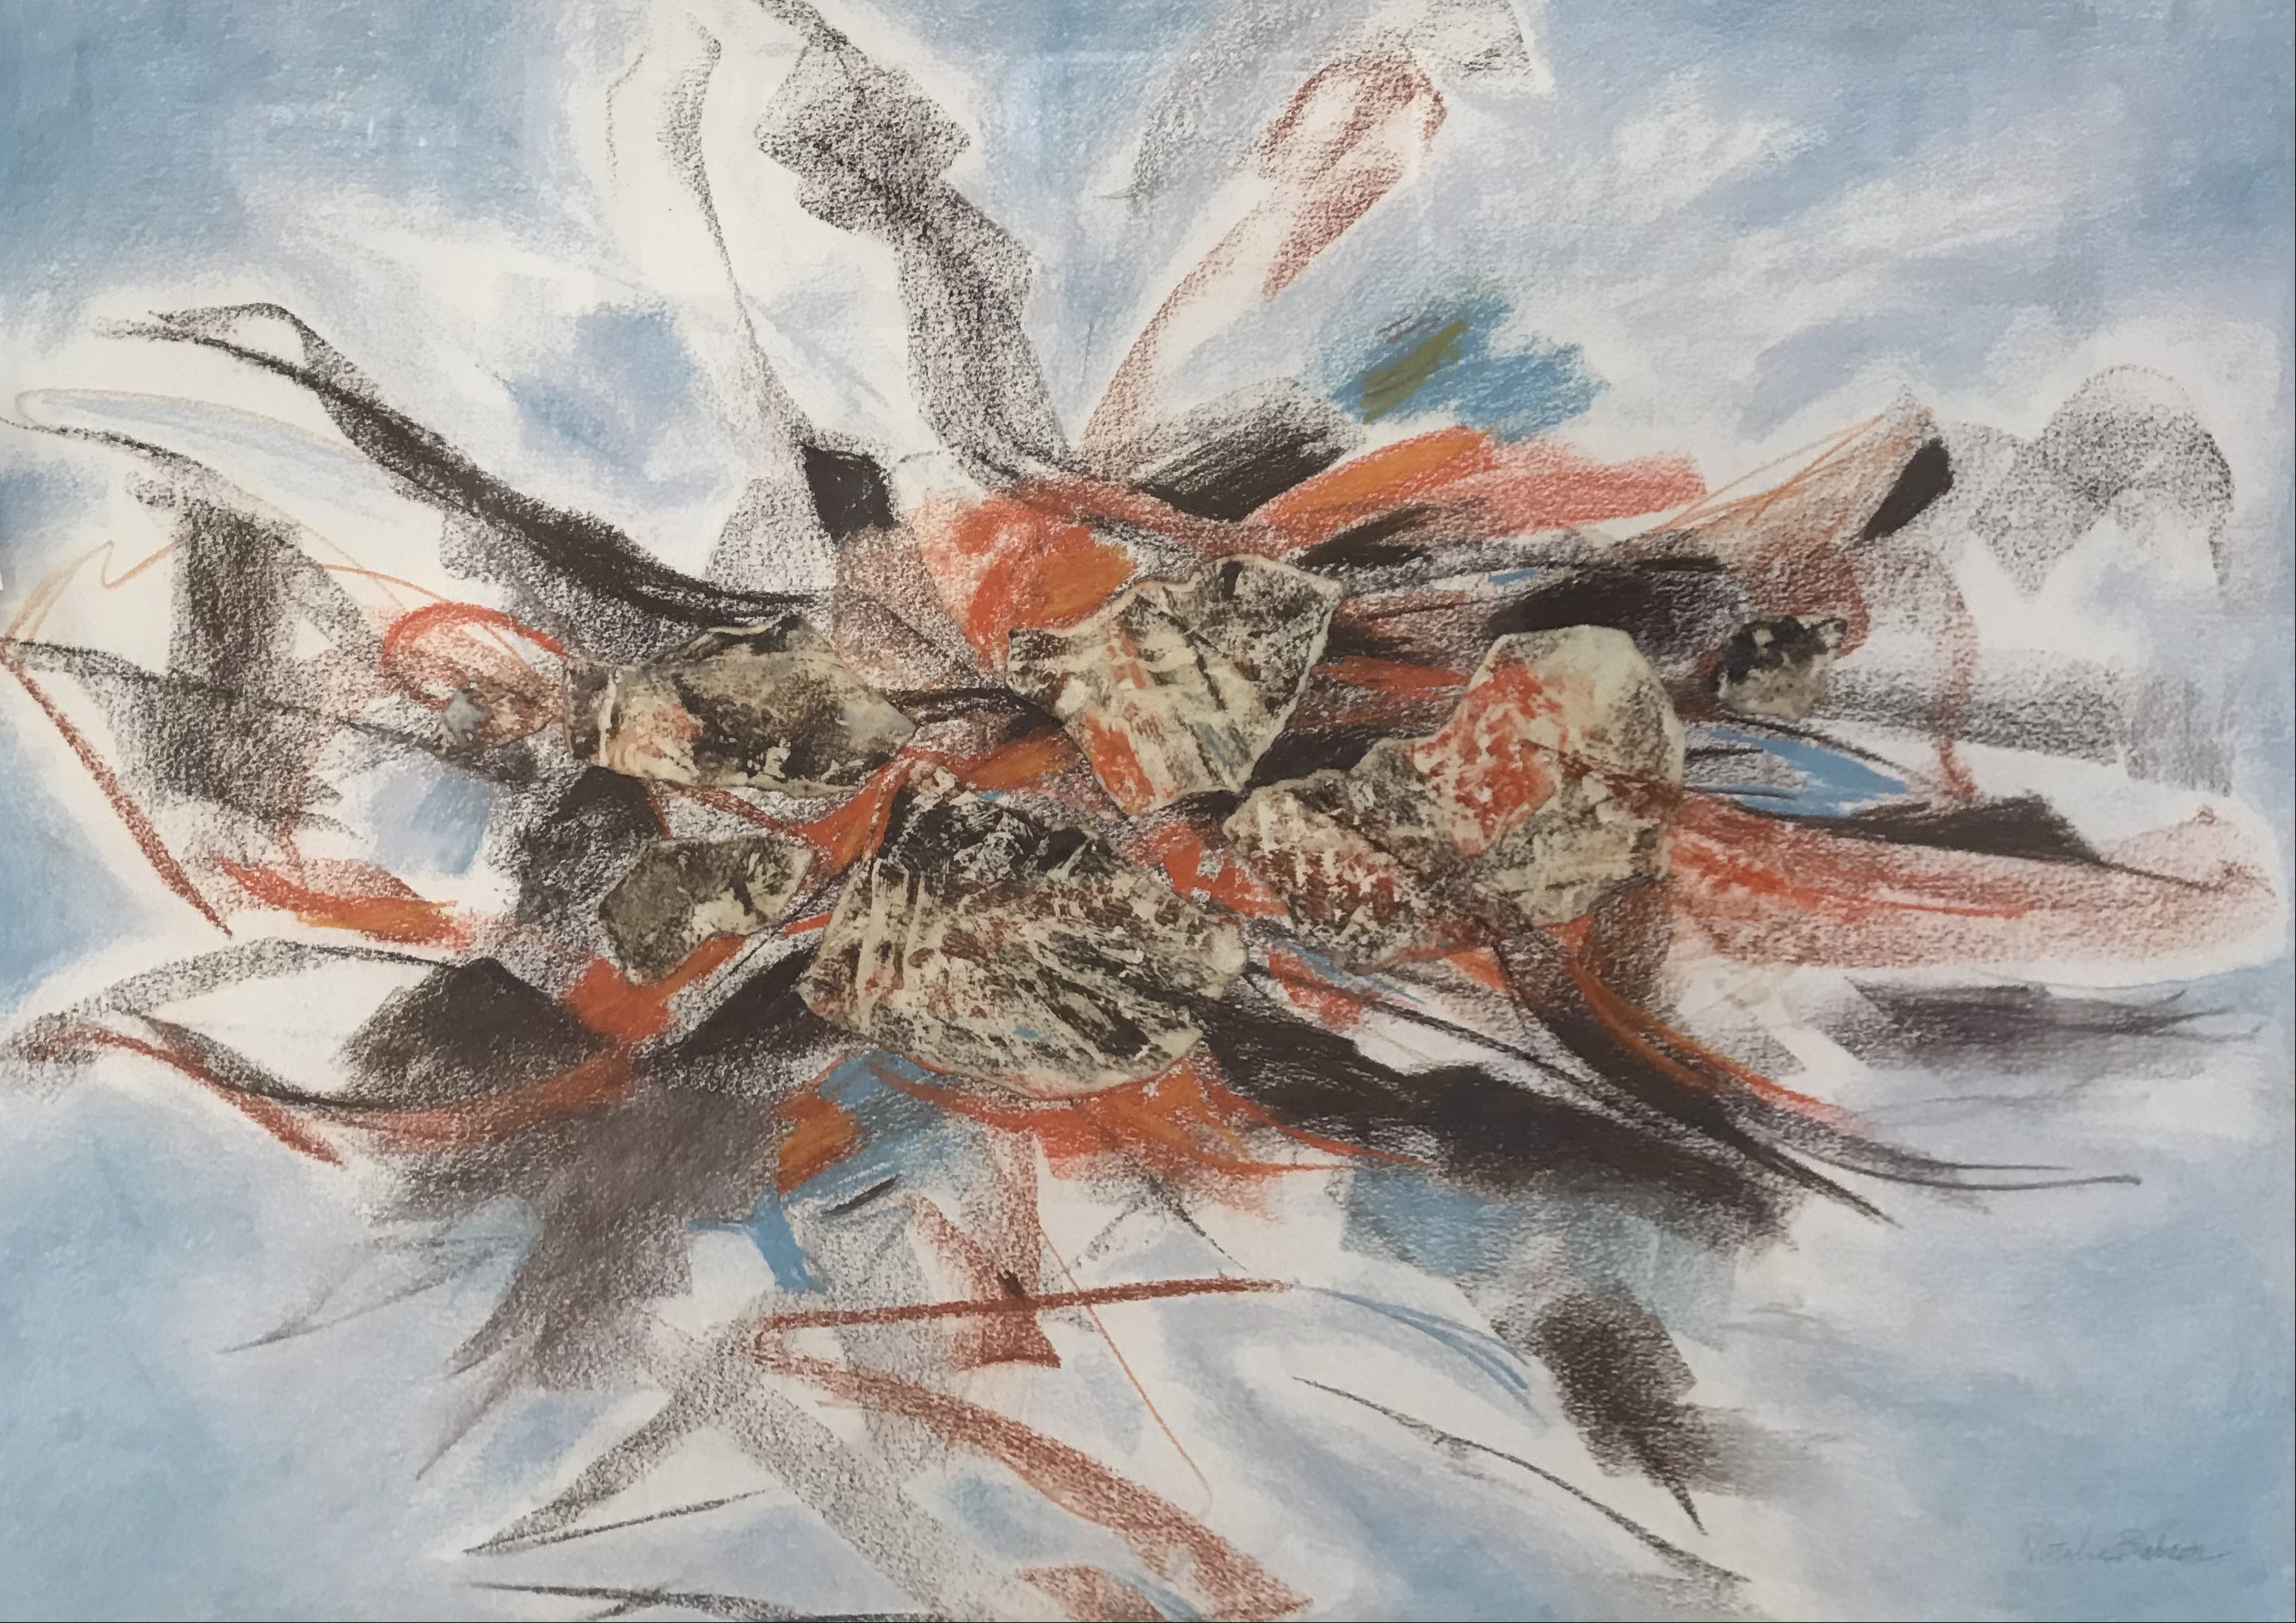 'Blue Sky Interrupted', pastel/collage by Natalie Babson ($750)